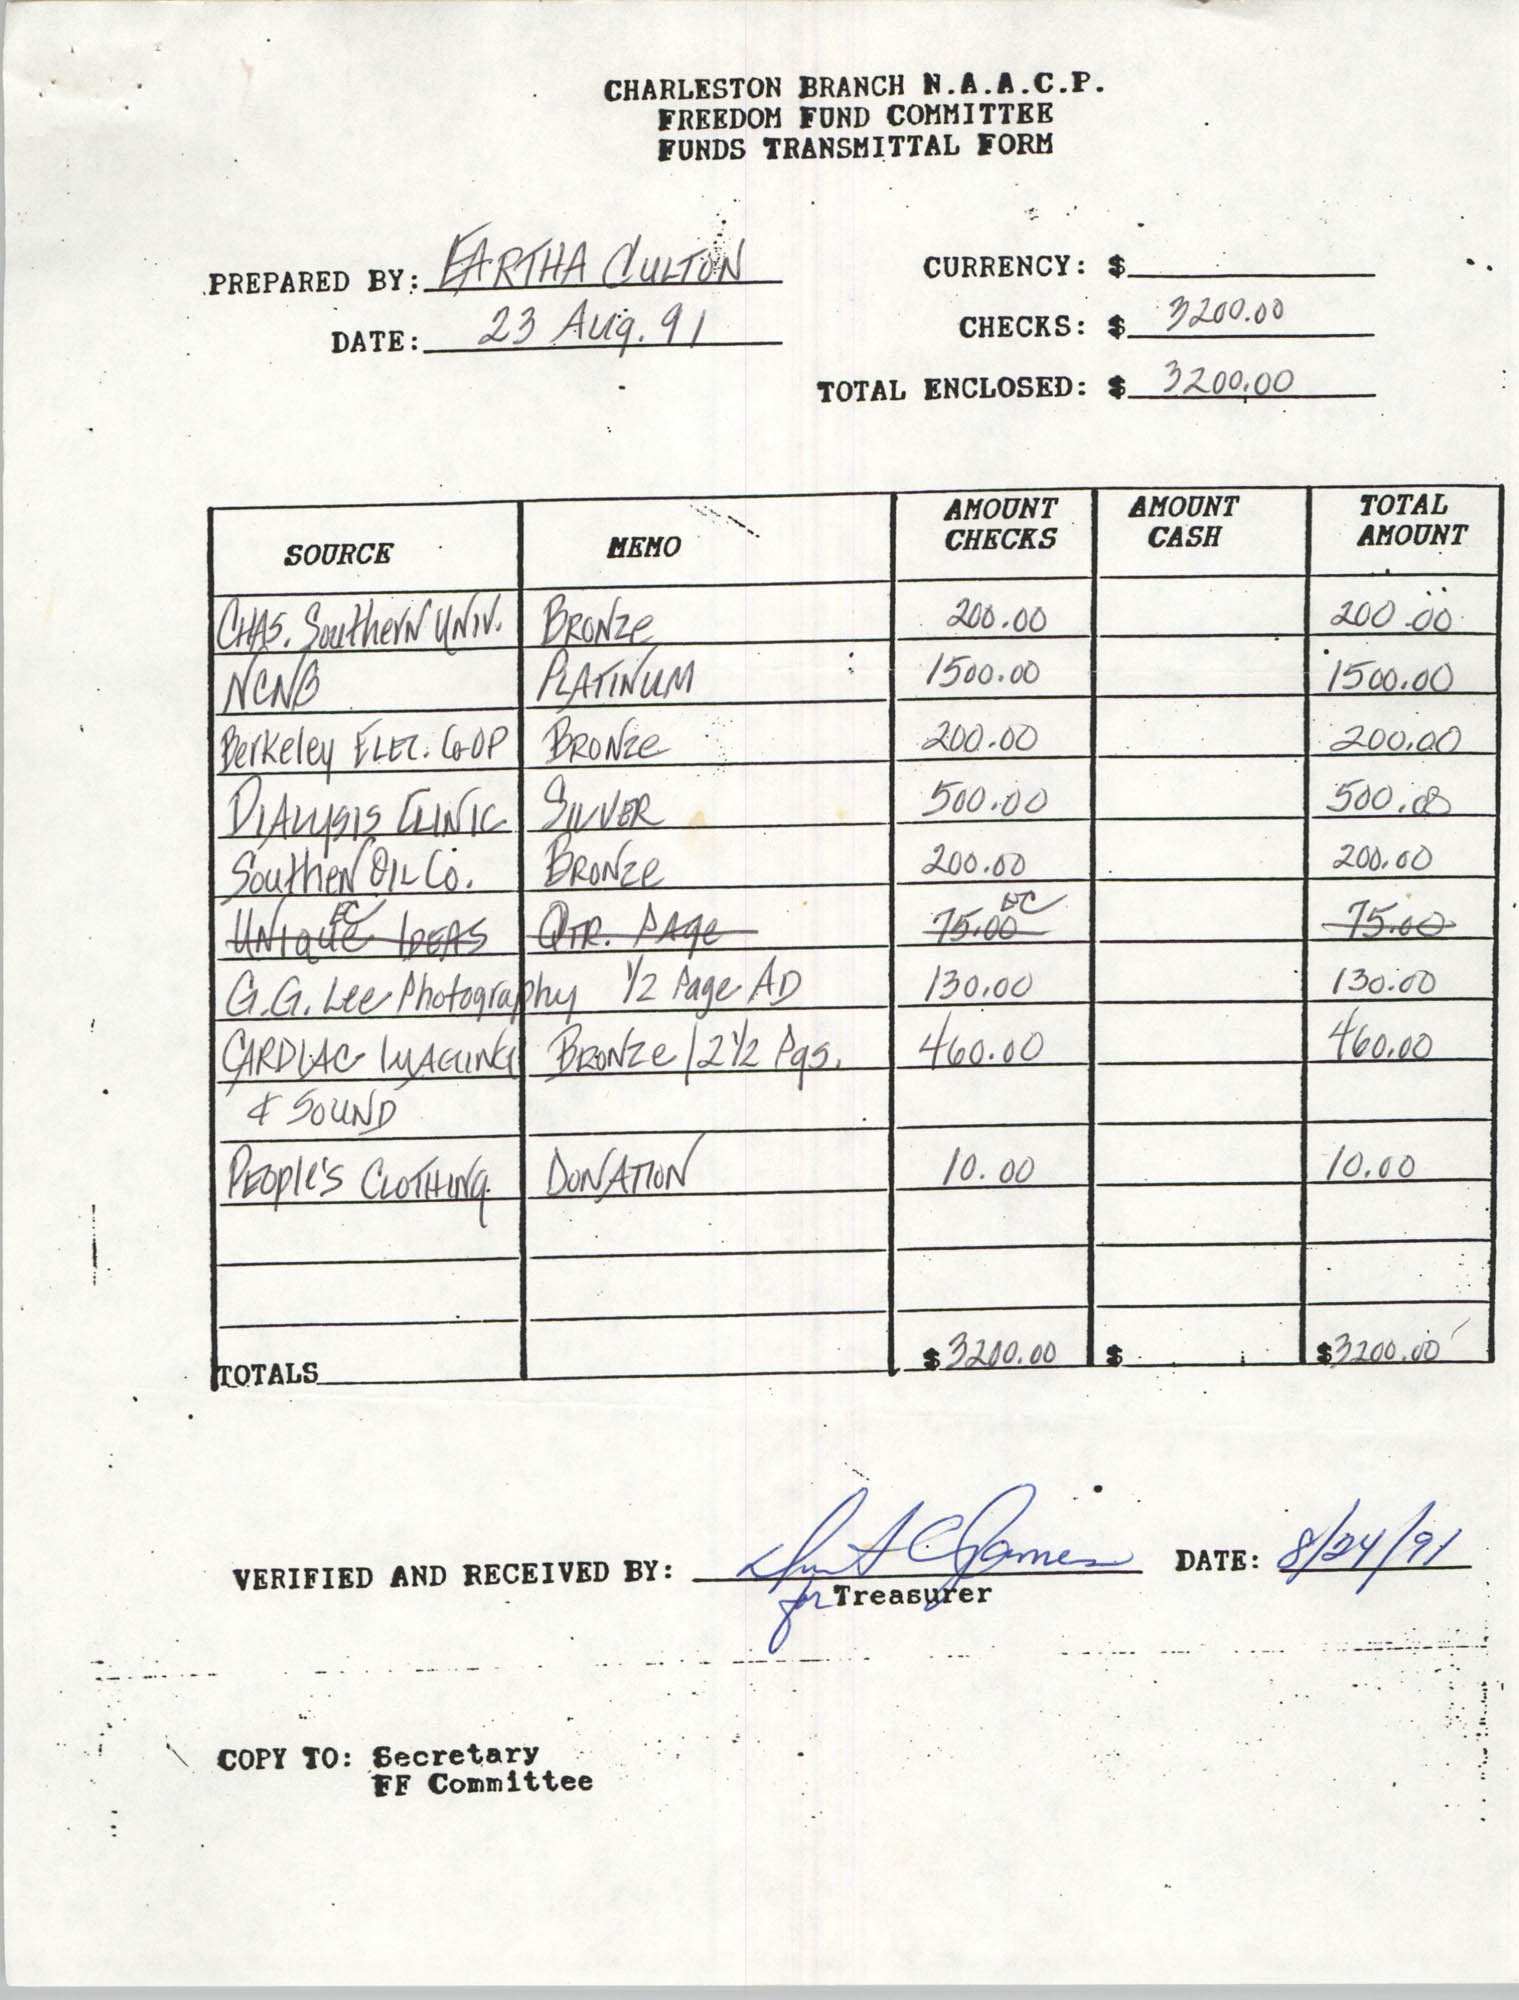 Charleston Branch of the NAACP Funds Transmittal Forms, August 1991, Page 27